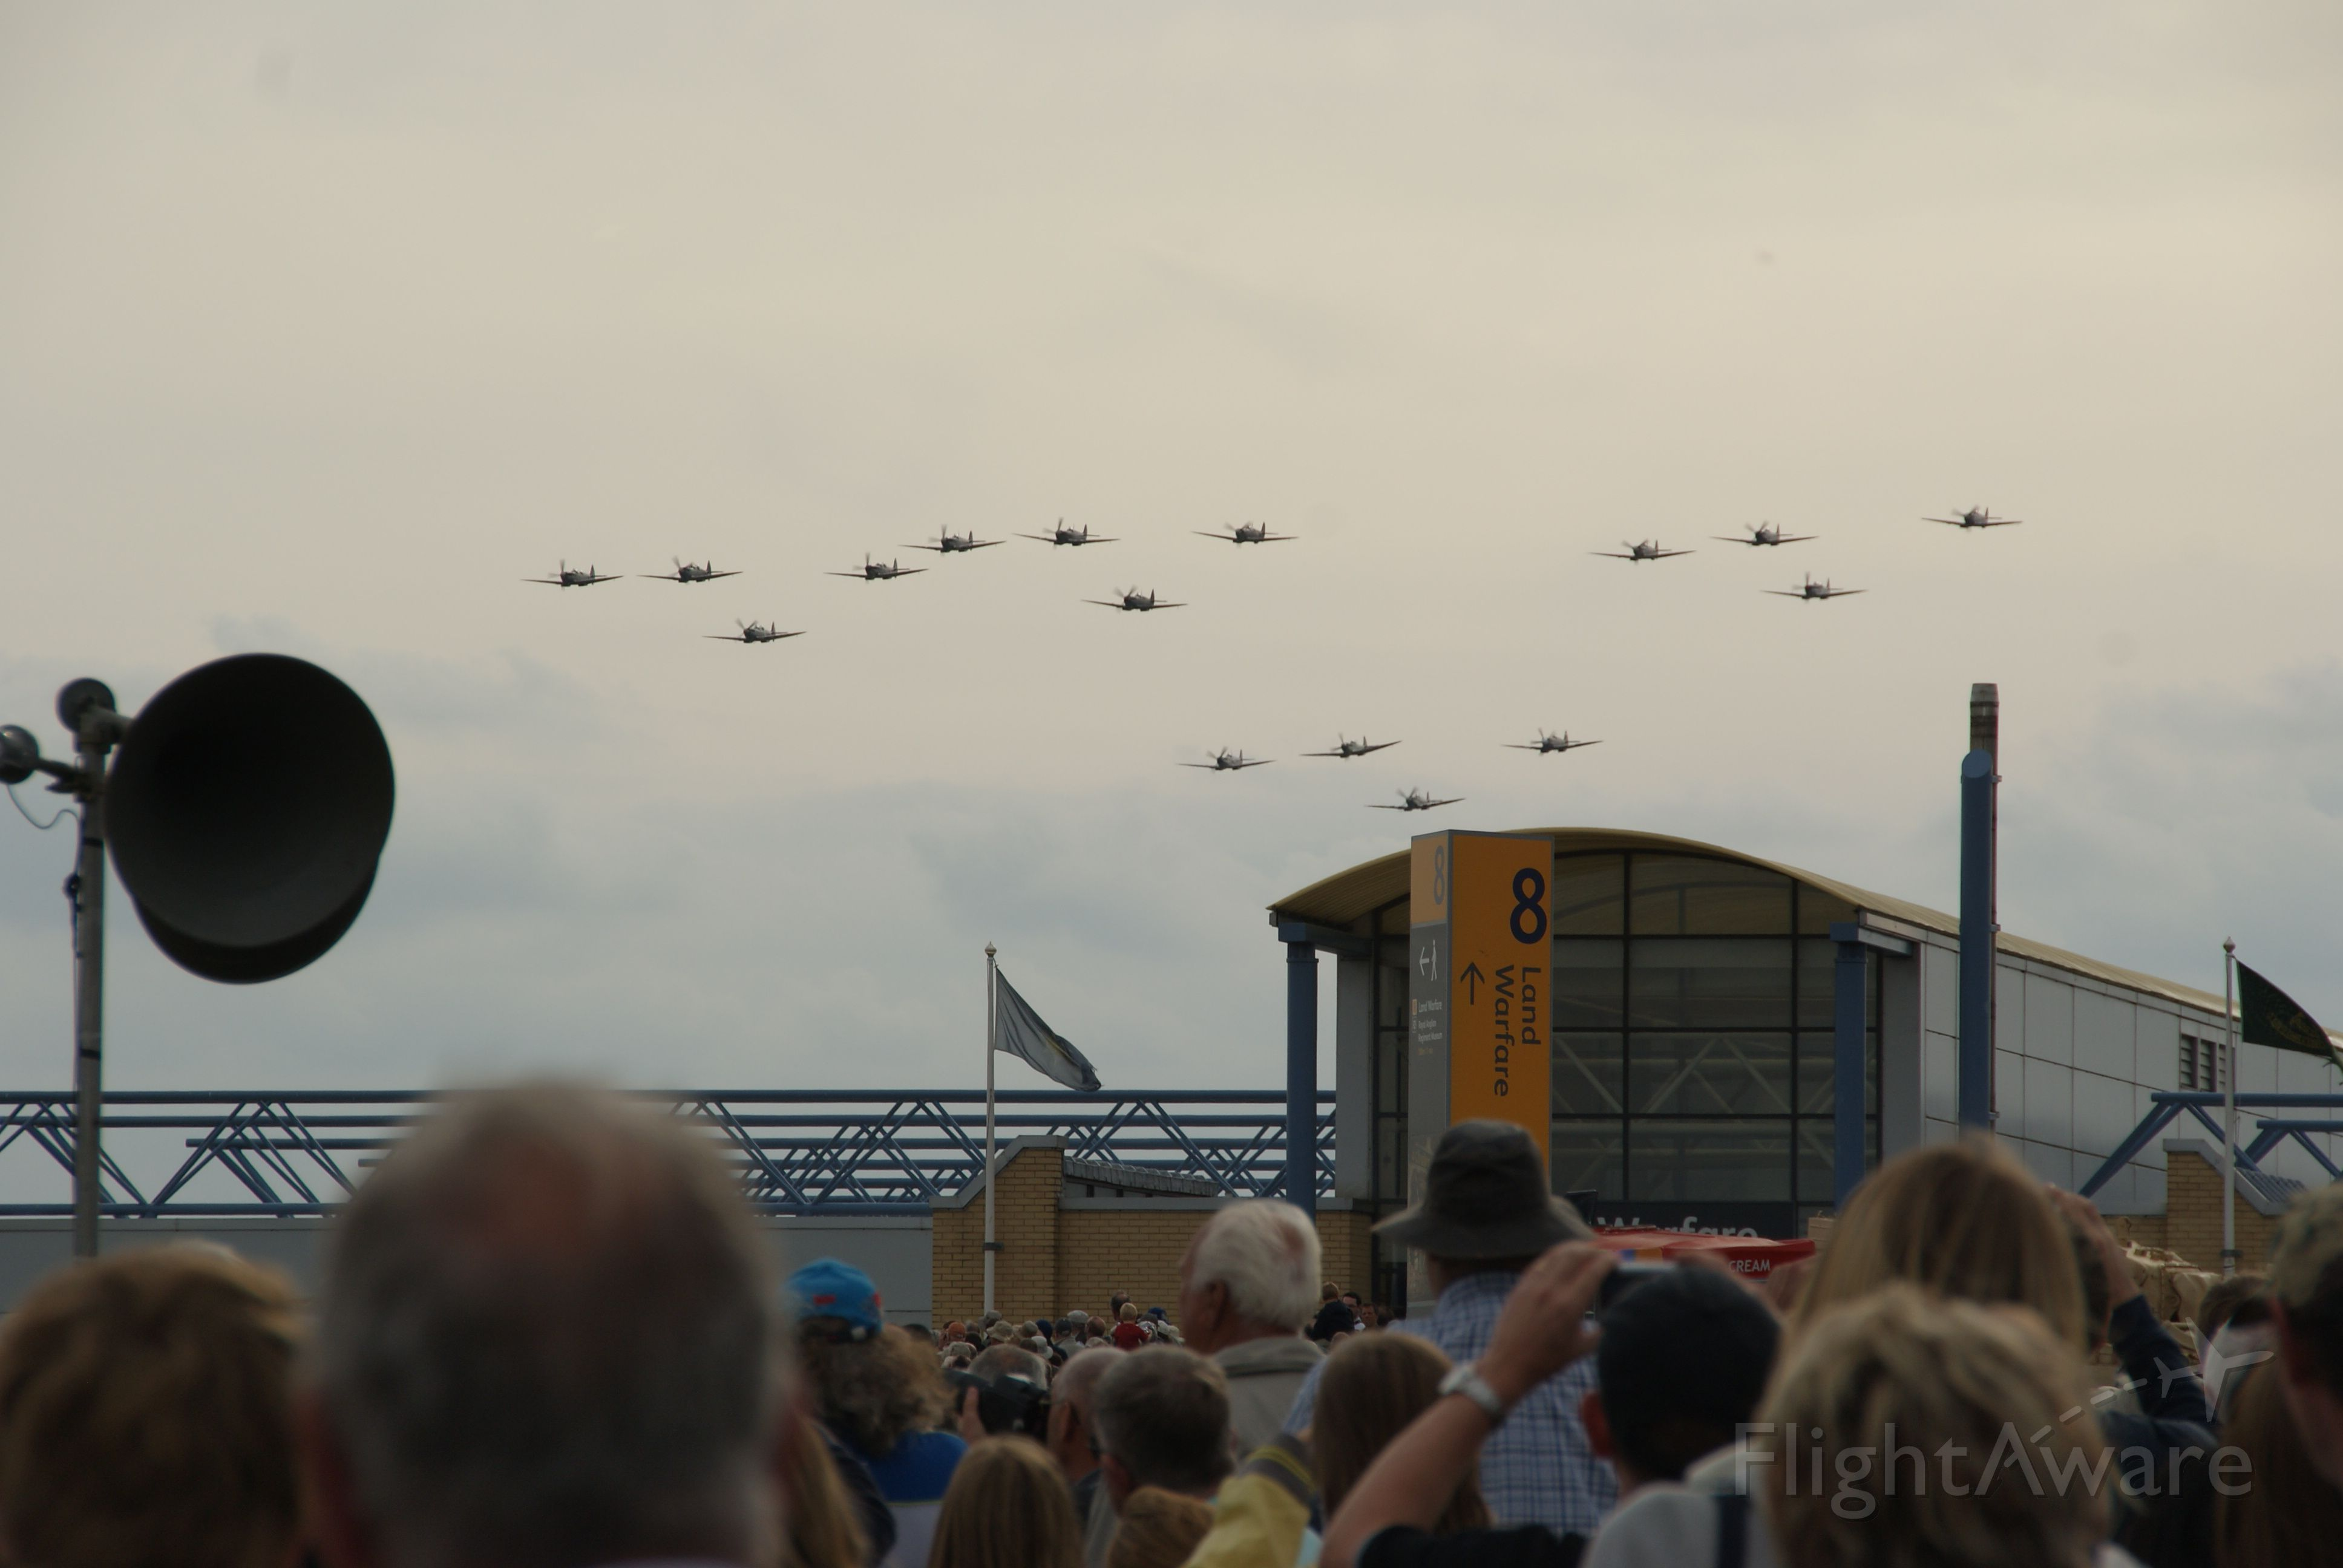 SUPERMARINE Spitfire — - Merlin music ... a special moment to treasure for any aviator and perhaps never to be seen & heard again.